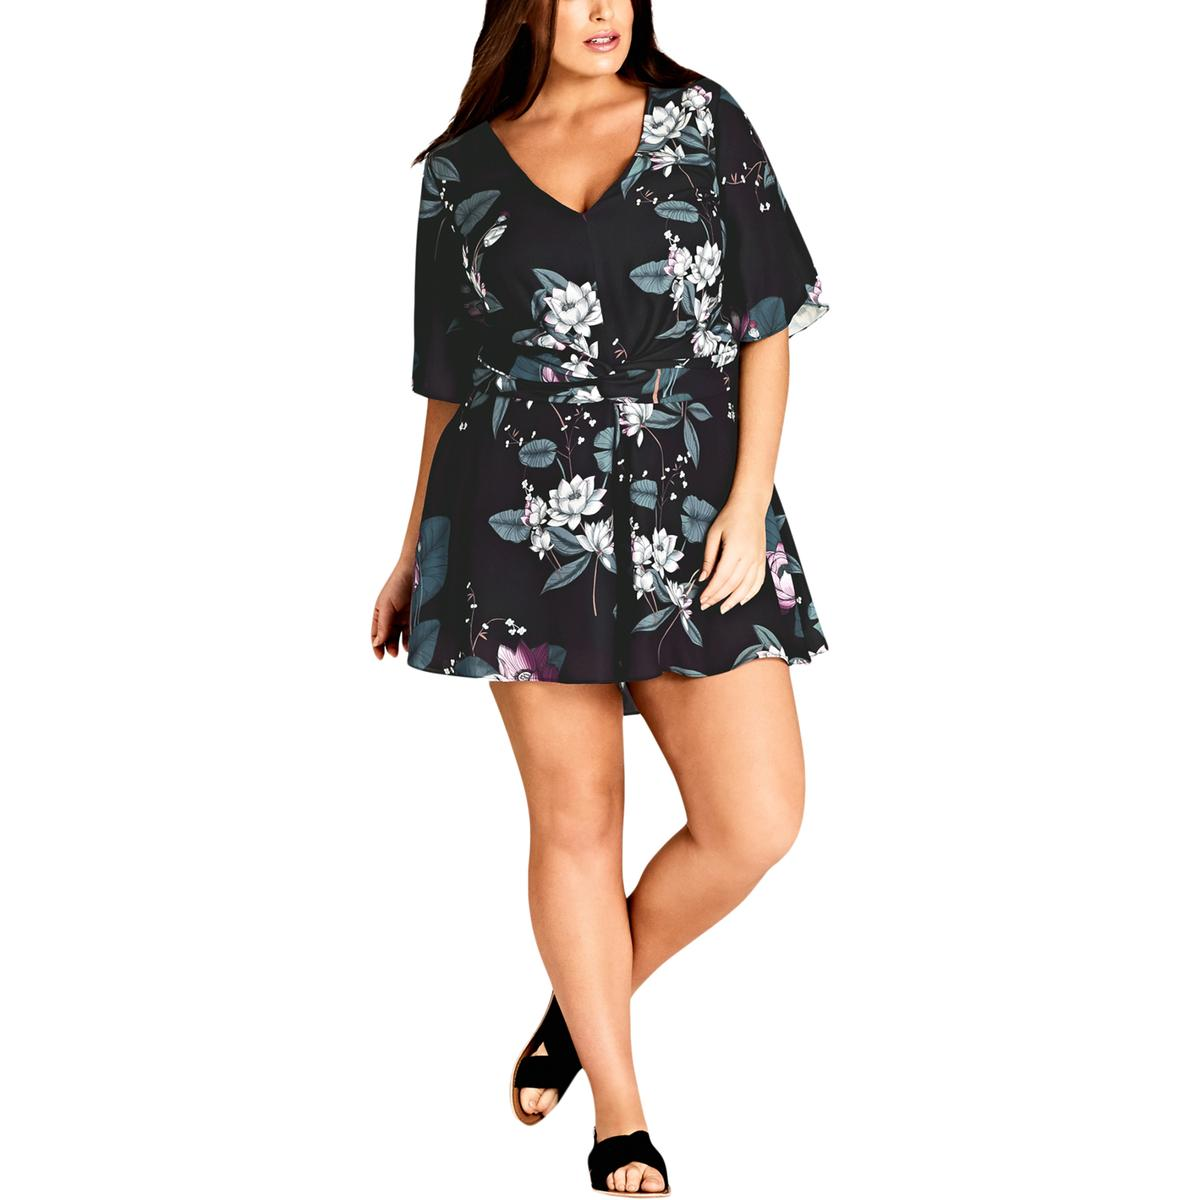 818746b725 Details about City Chic Womens Wide Sleeves Cut-Out Back Floral Print  Romper Plus BHFO 9742